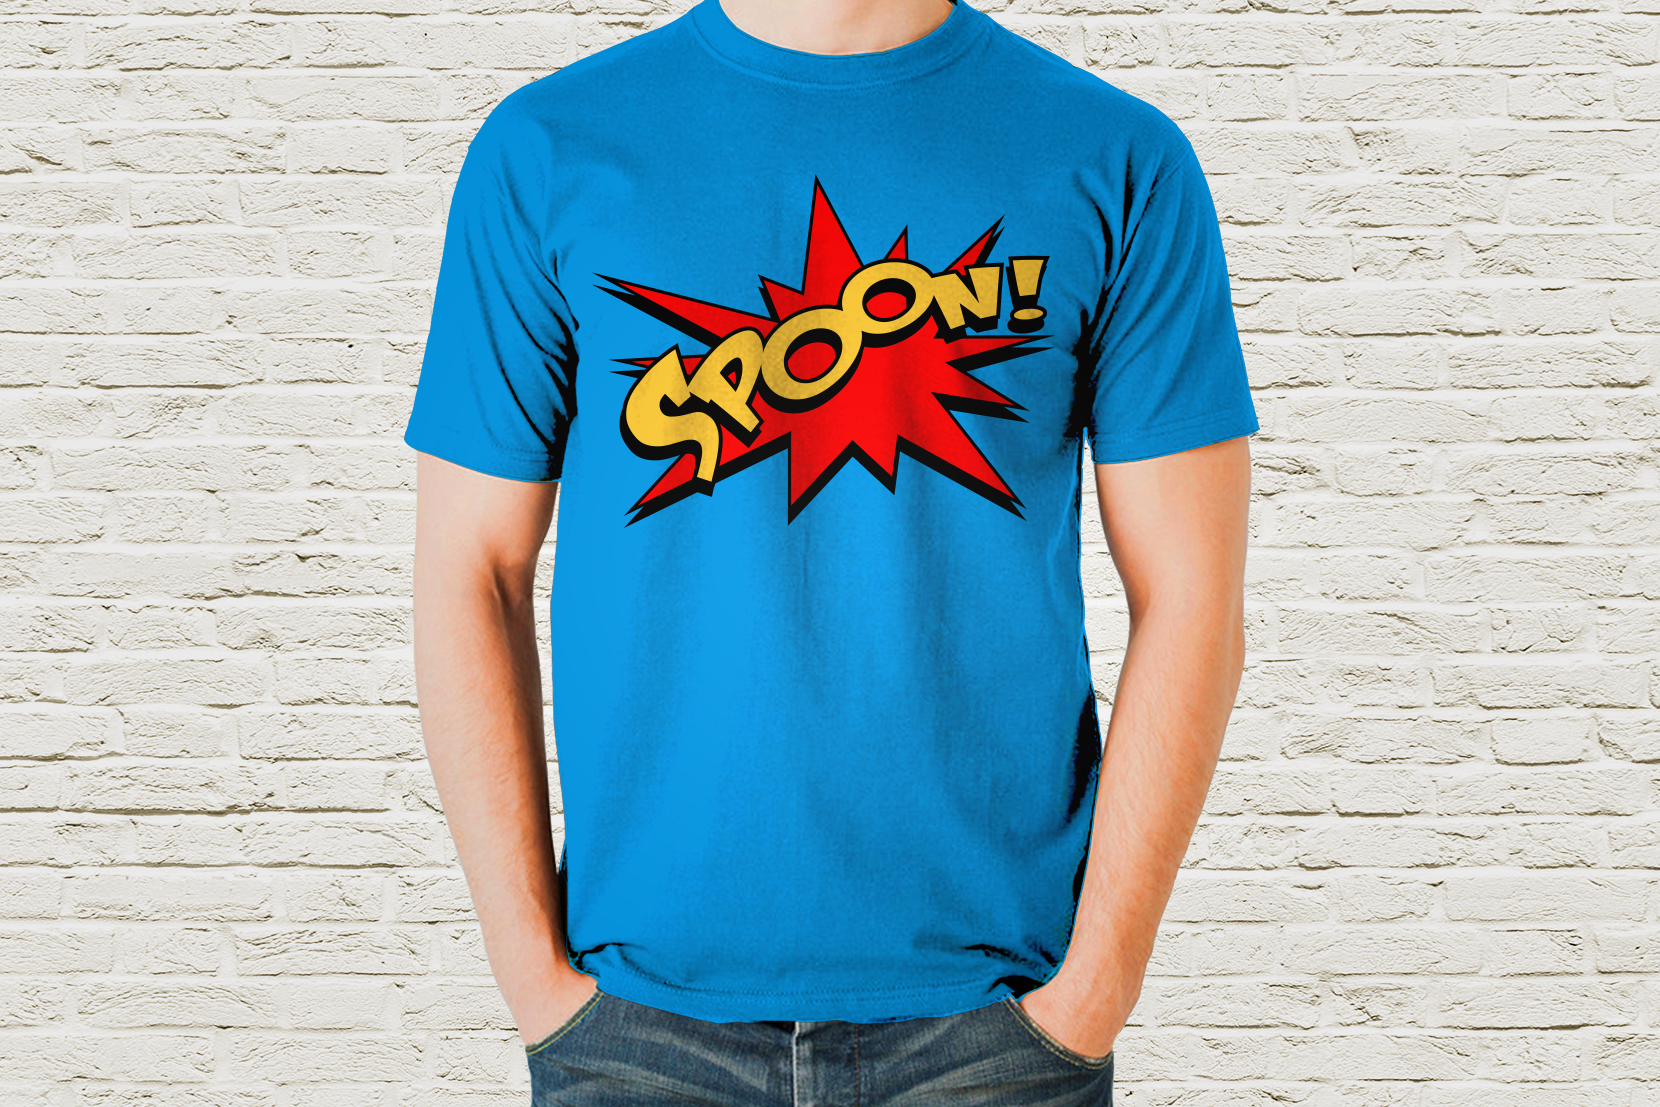 Comic Book Burst Spoon SVG File Cutting Template example image 1